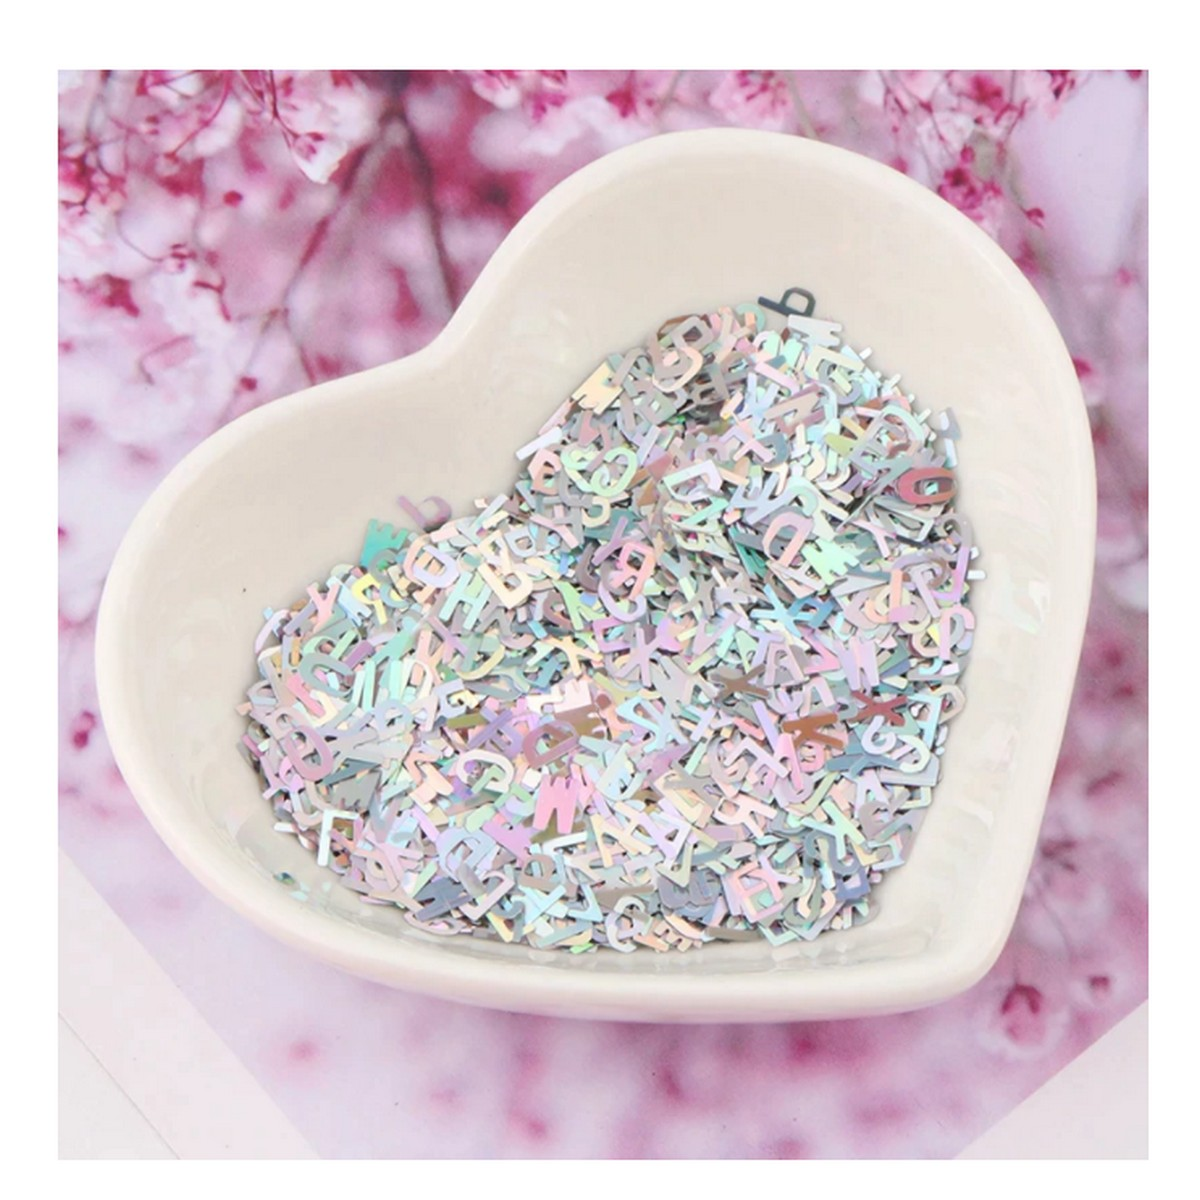 2 grm Holo Sequins Glitter Nail Art Mixed Size Letter Design Shape Flakes Tips Manicure Silver 3d Nail Accessories